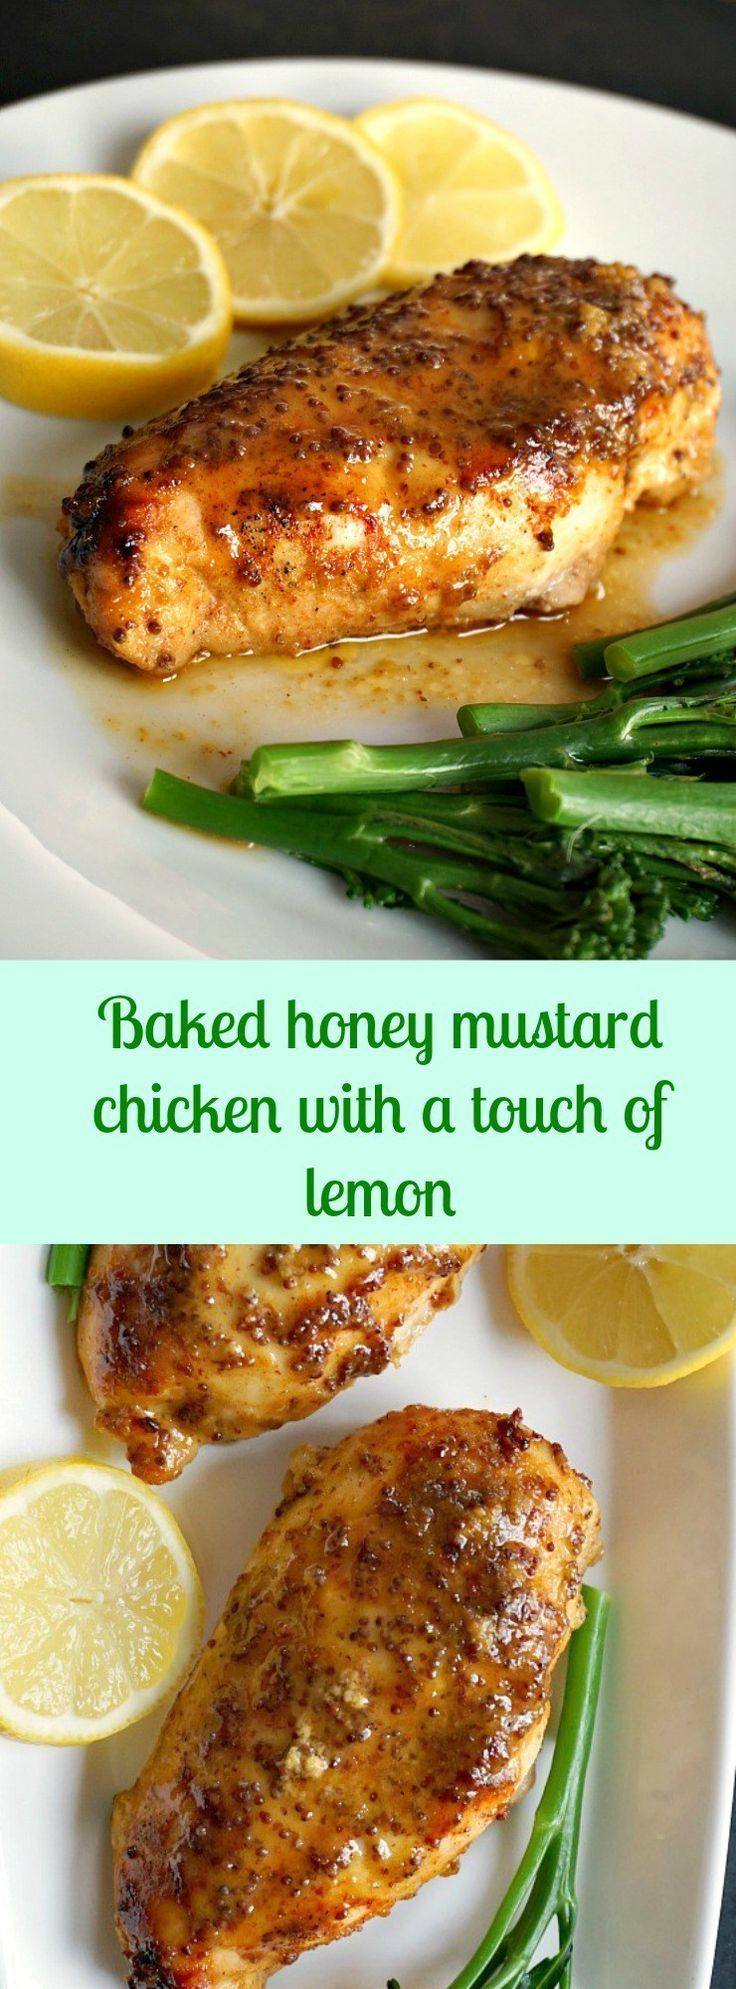 Baked honey mustard chicken with a touch of lemon, an amzing meal for two. Ideal for Valentine's Day or just a romantic dinner.